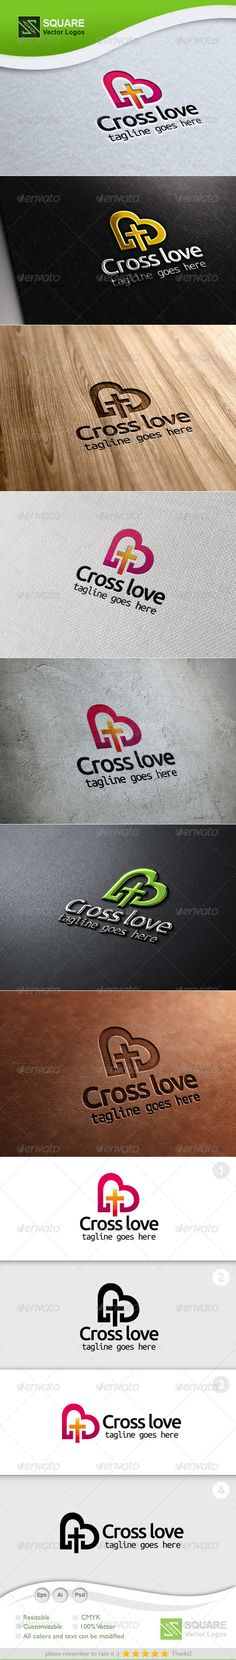 Cross, Love Vector Logo Template  #GraphicRiver        File Description This is custom logo template. Illustrator (AI), Photoshop (PSD), Vector (EPS) logo files included in this download. You can customize to your own branding. All colors and text can be modified. It is suitable for love, symbol, heart, Cross Point, Christ, christian, church, logo, cross, community related logos.  FEATURES   The Logo Is 100% Vector  100% Customizable  Fully Layered Logo Template  CMYK   Gradient version…